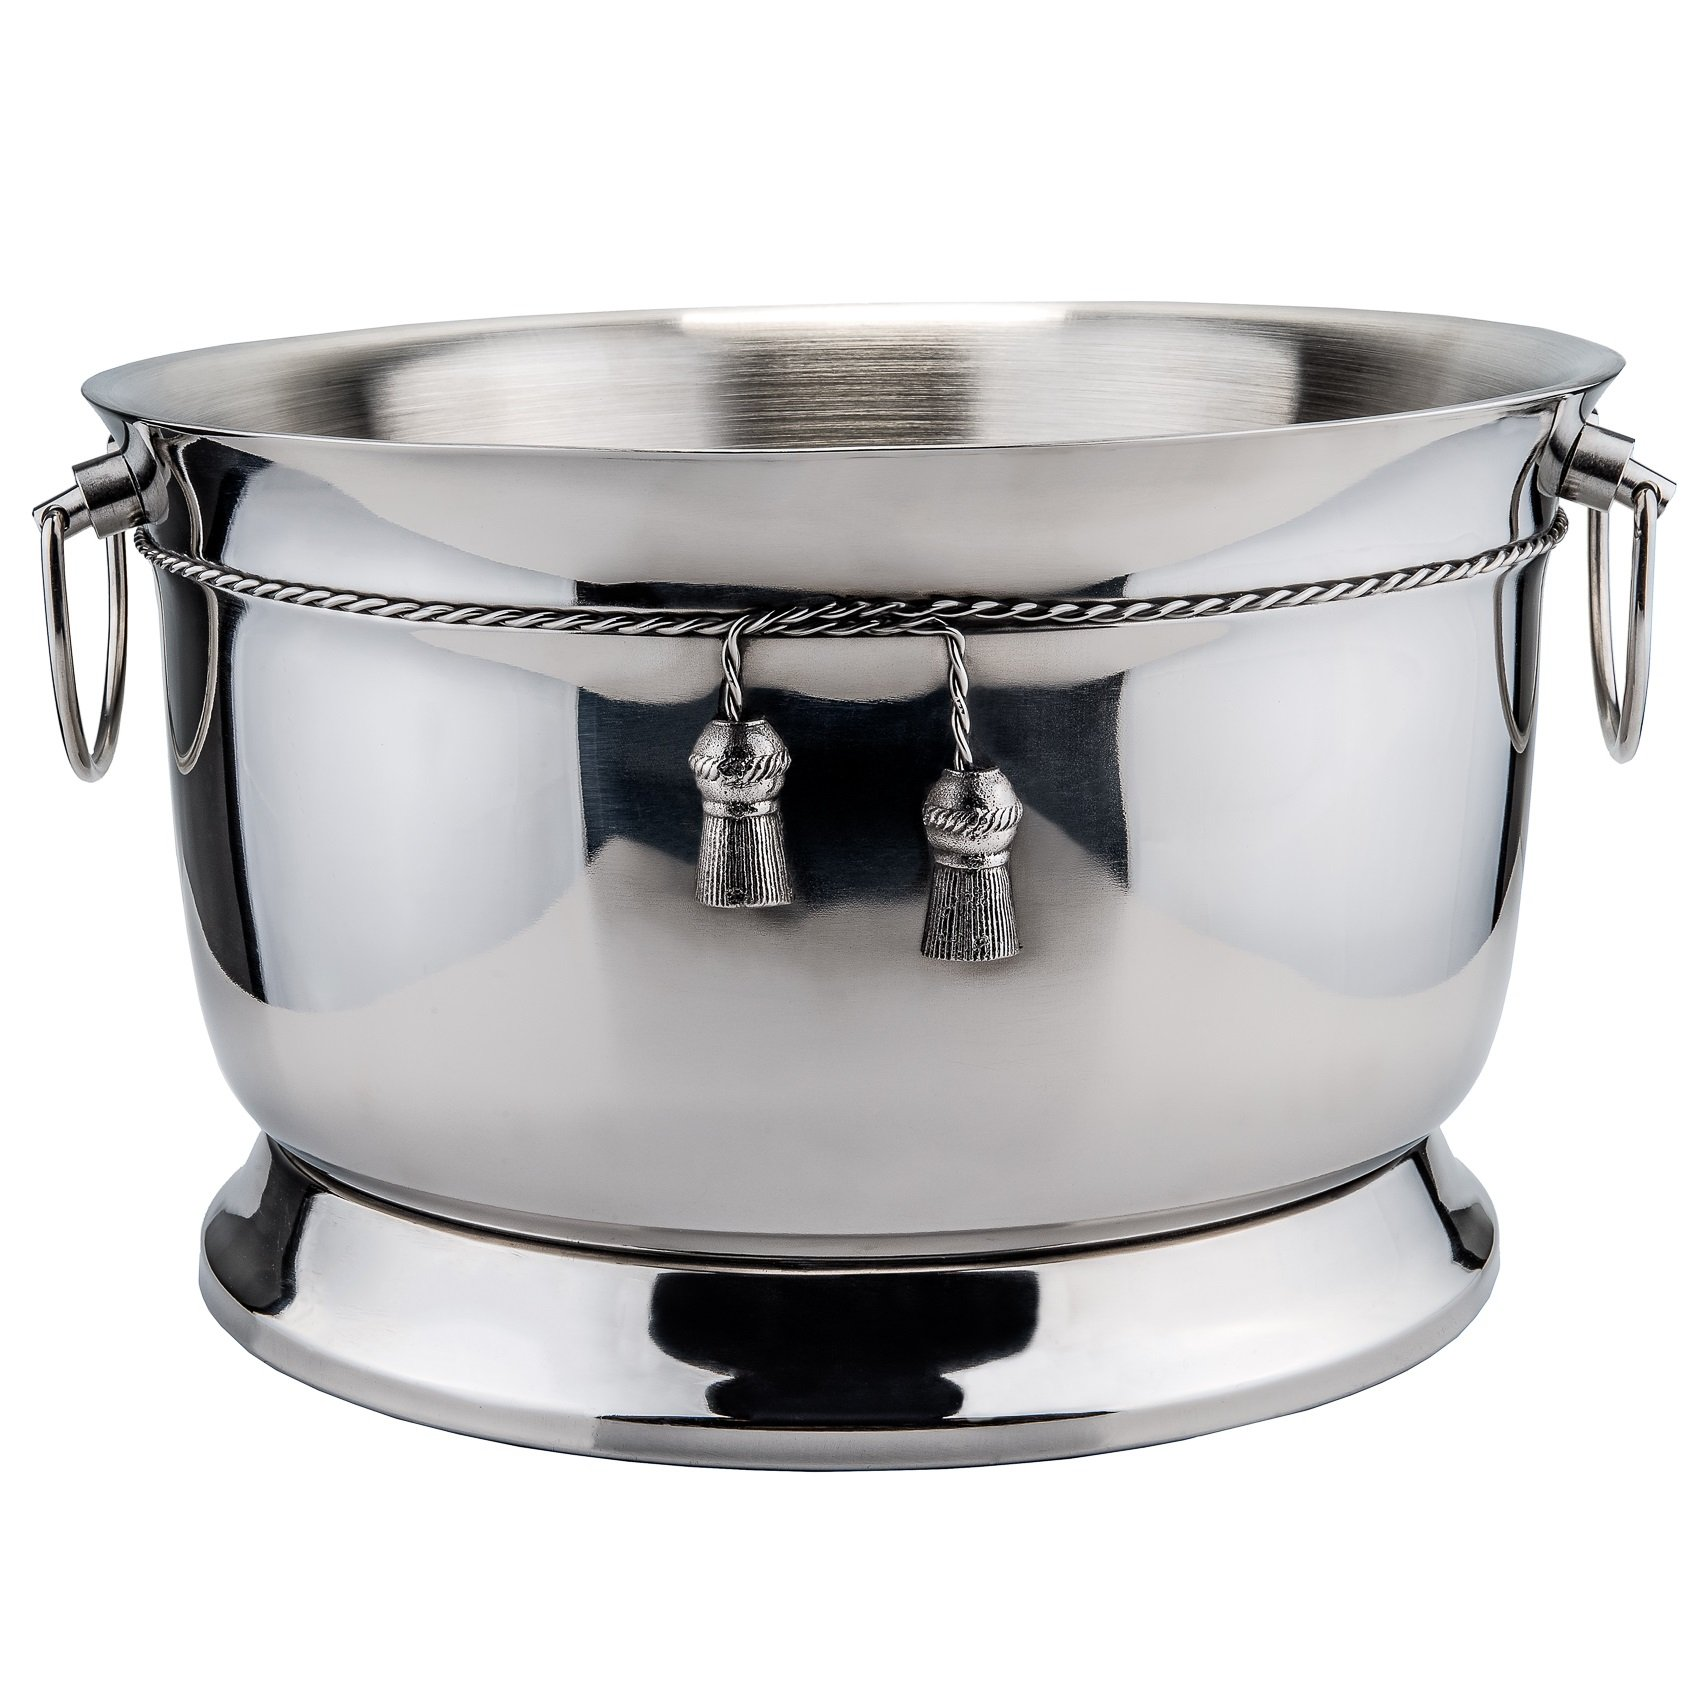 Old Dutch International Double-Walled Party Tub with Tie Knot, Stainless Steel